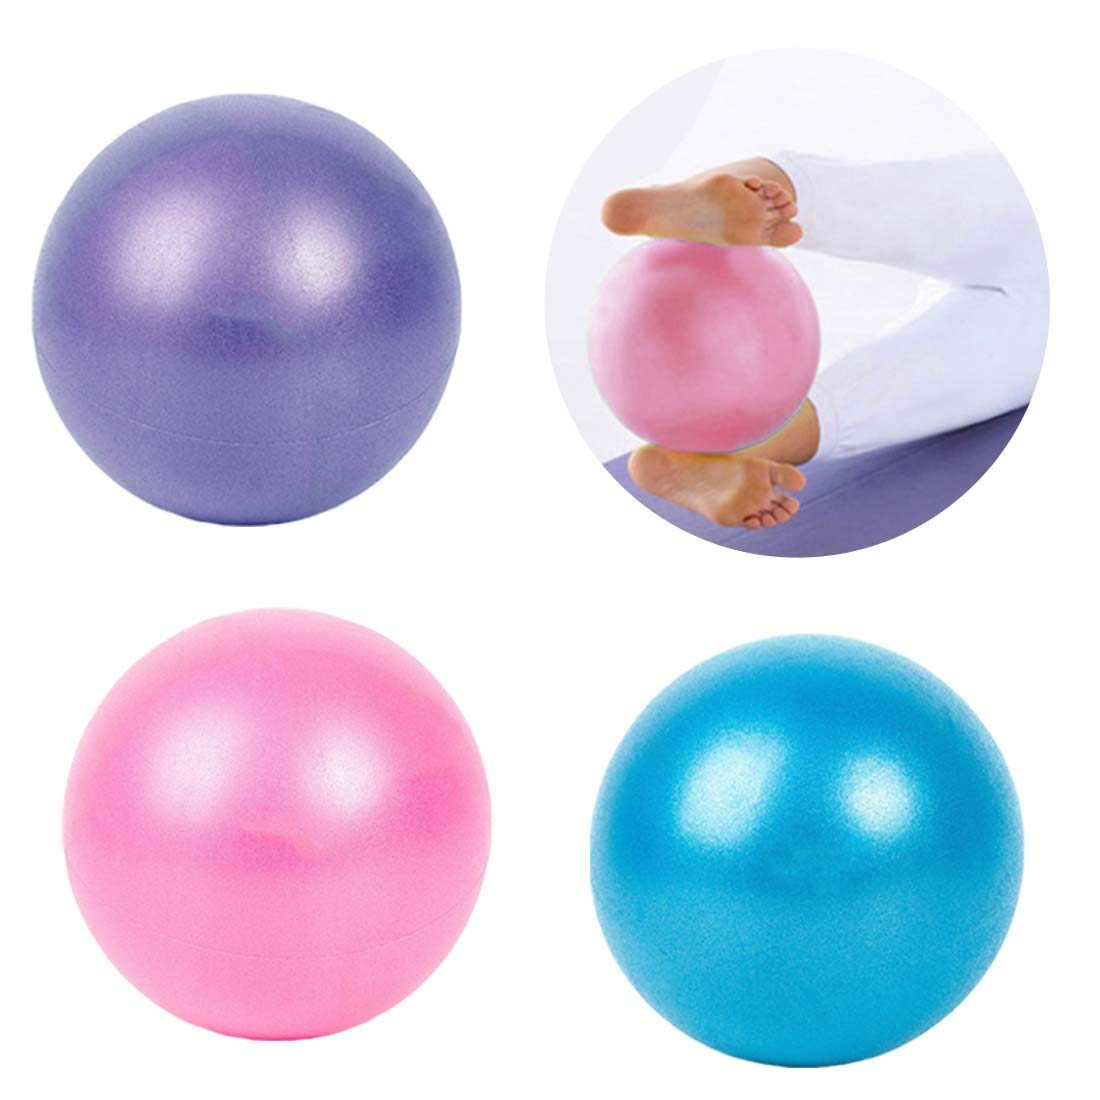 Fishing-Accessories - 25cm Pelota Yoga Exercise Gymnastic ...